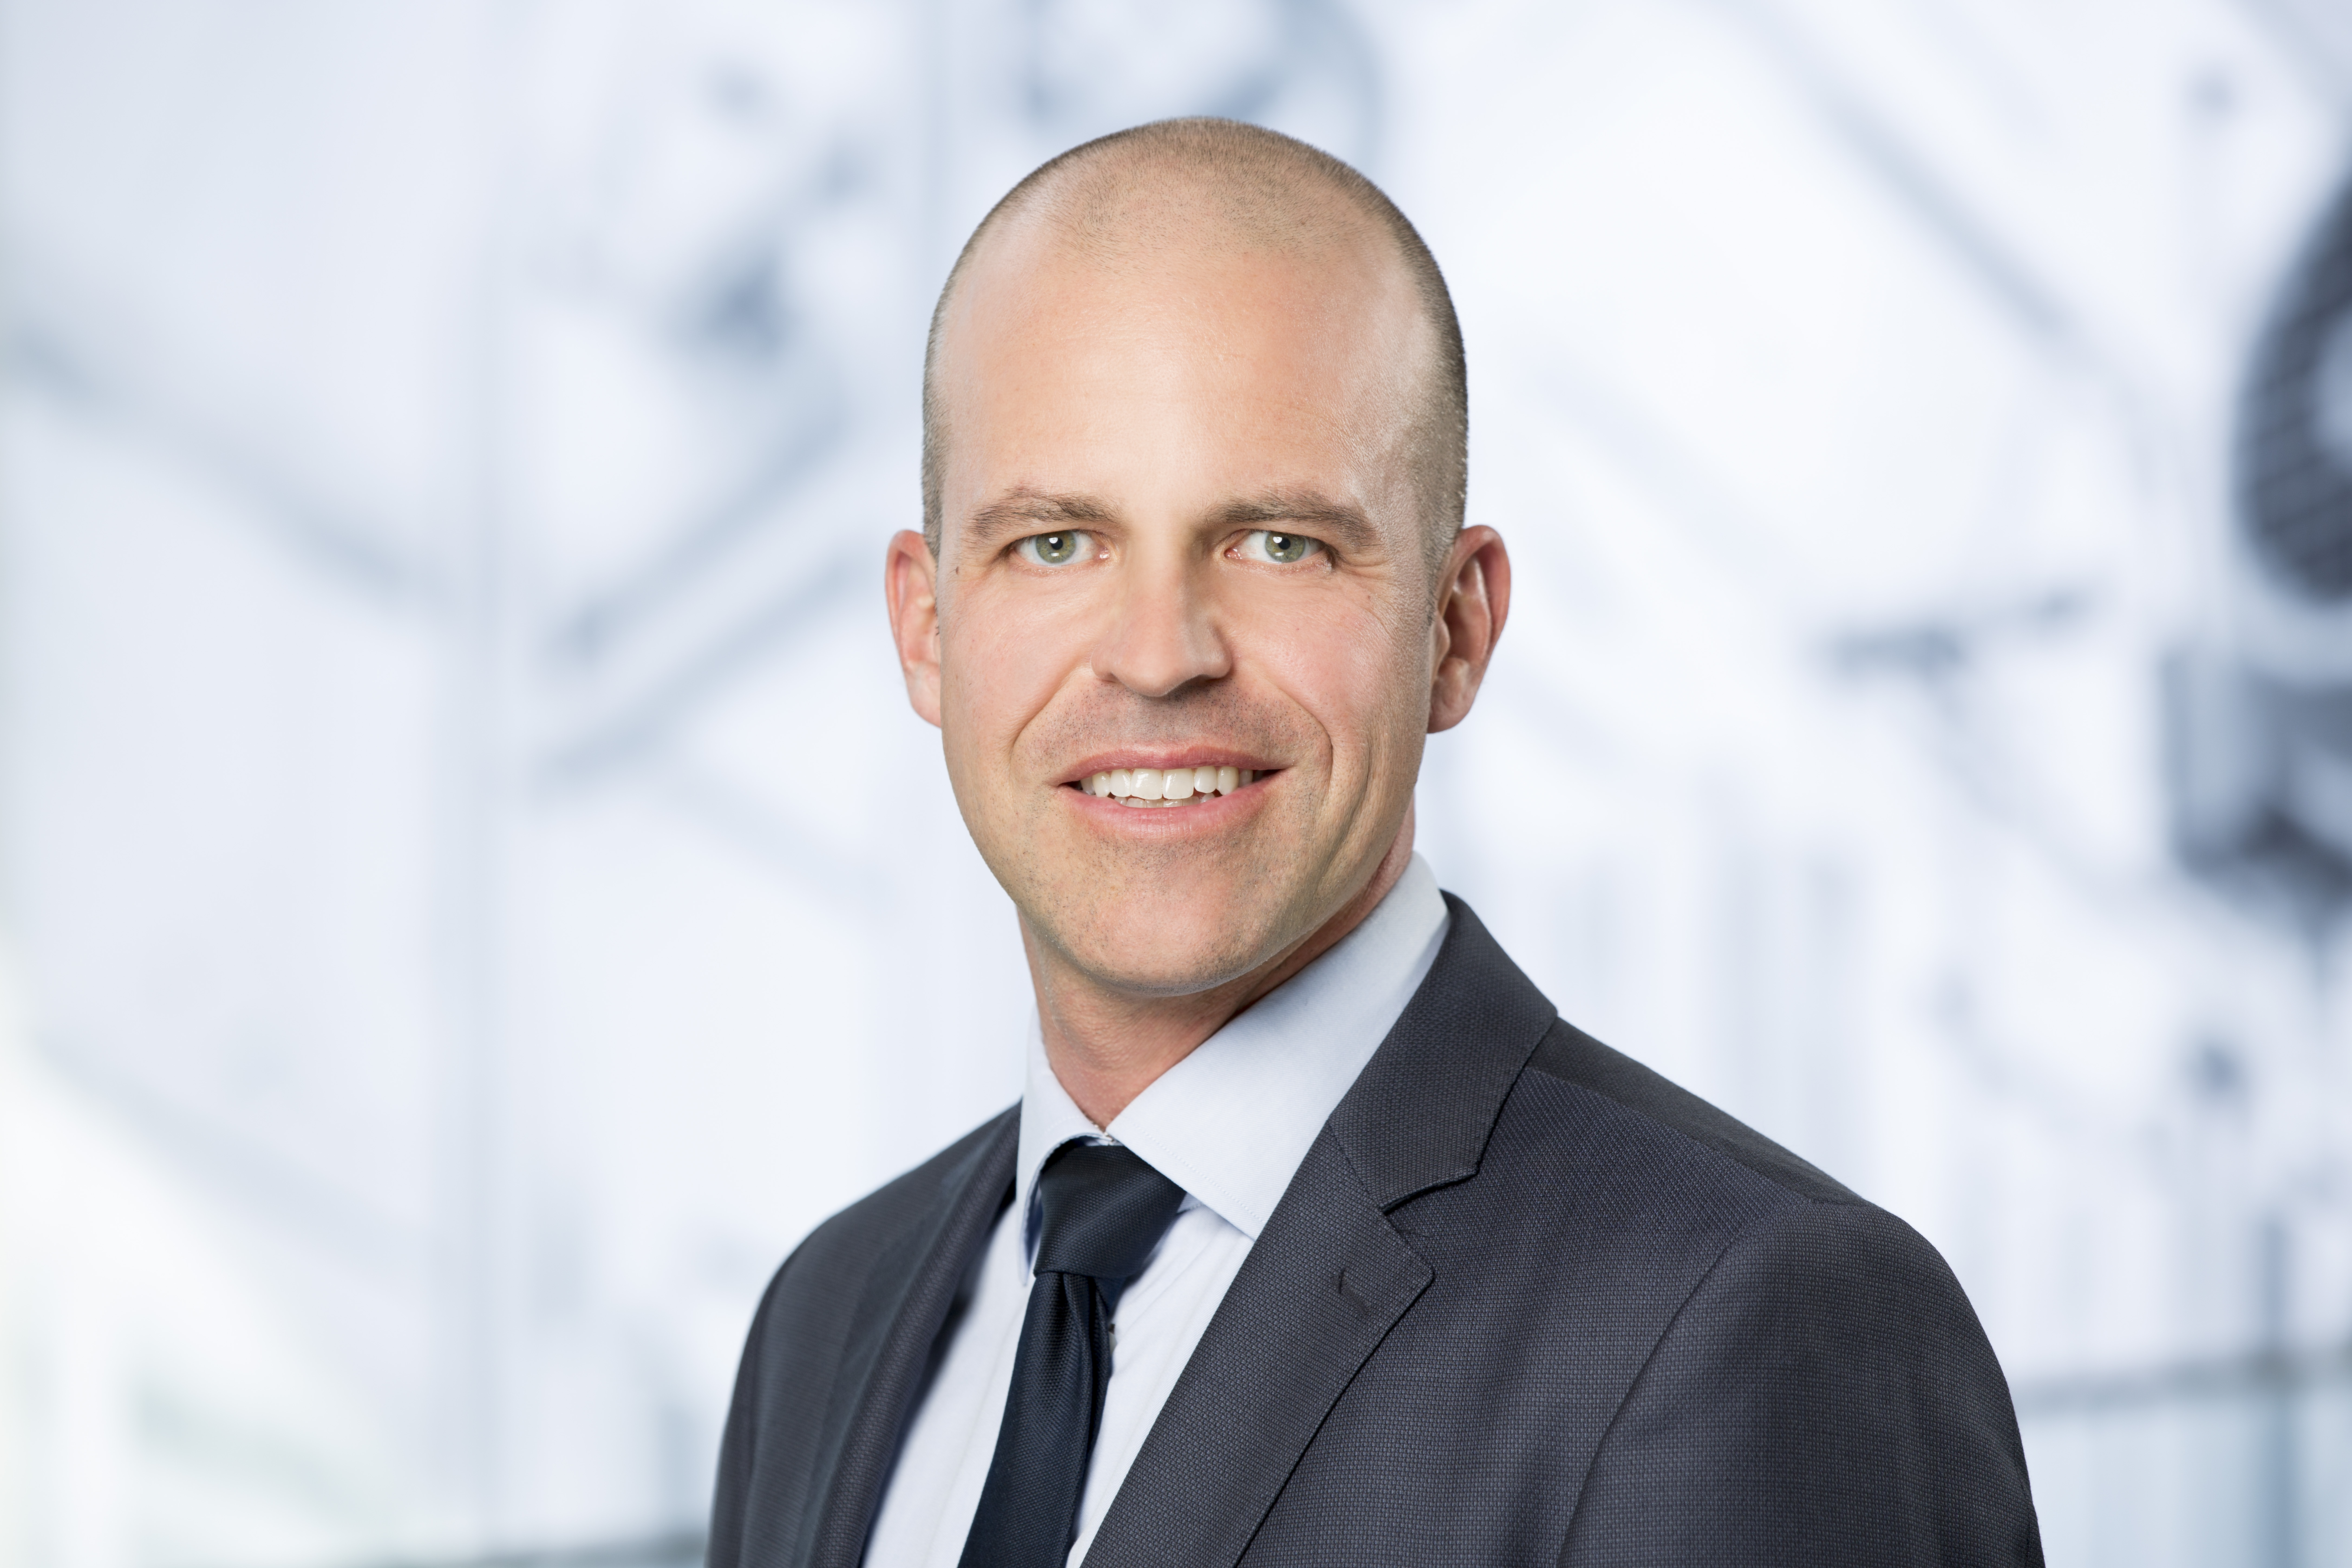 portrait of Marcel Härtlein, Global Head Transformation at the Emmi Group